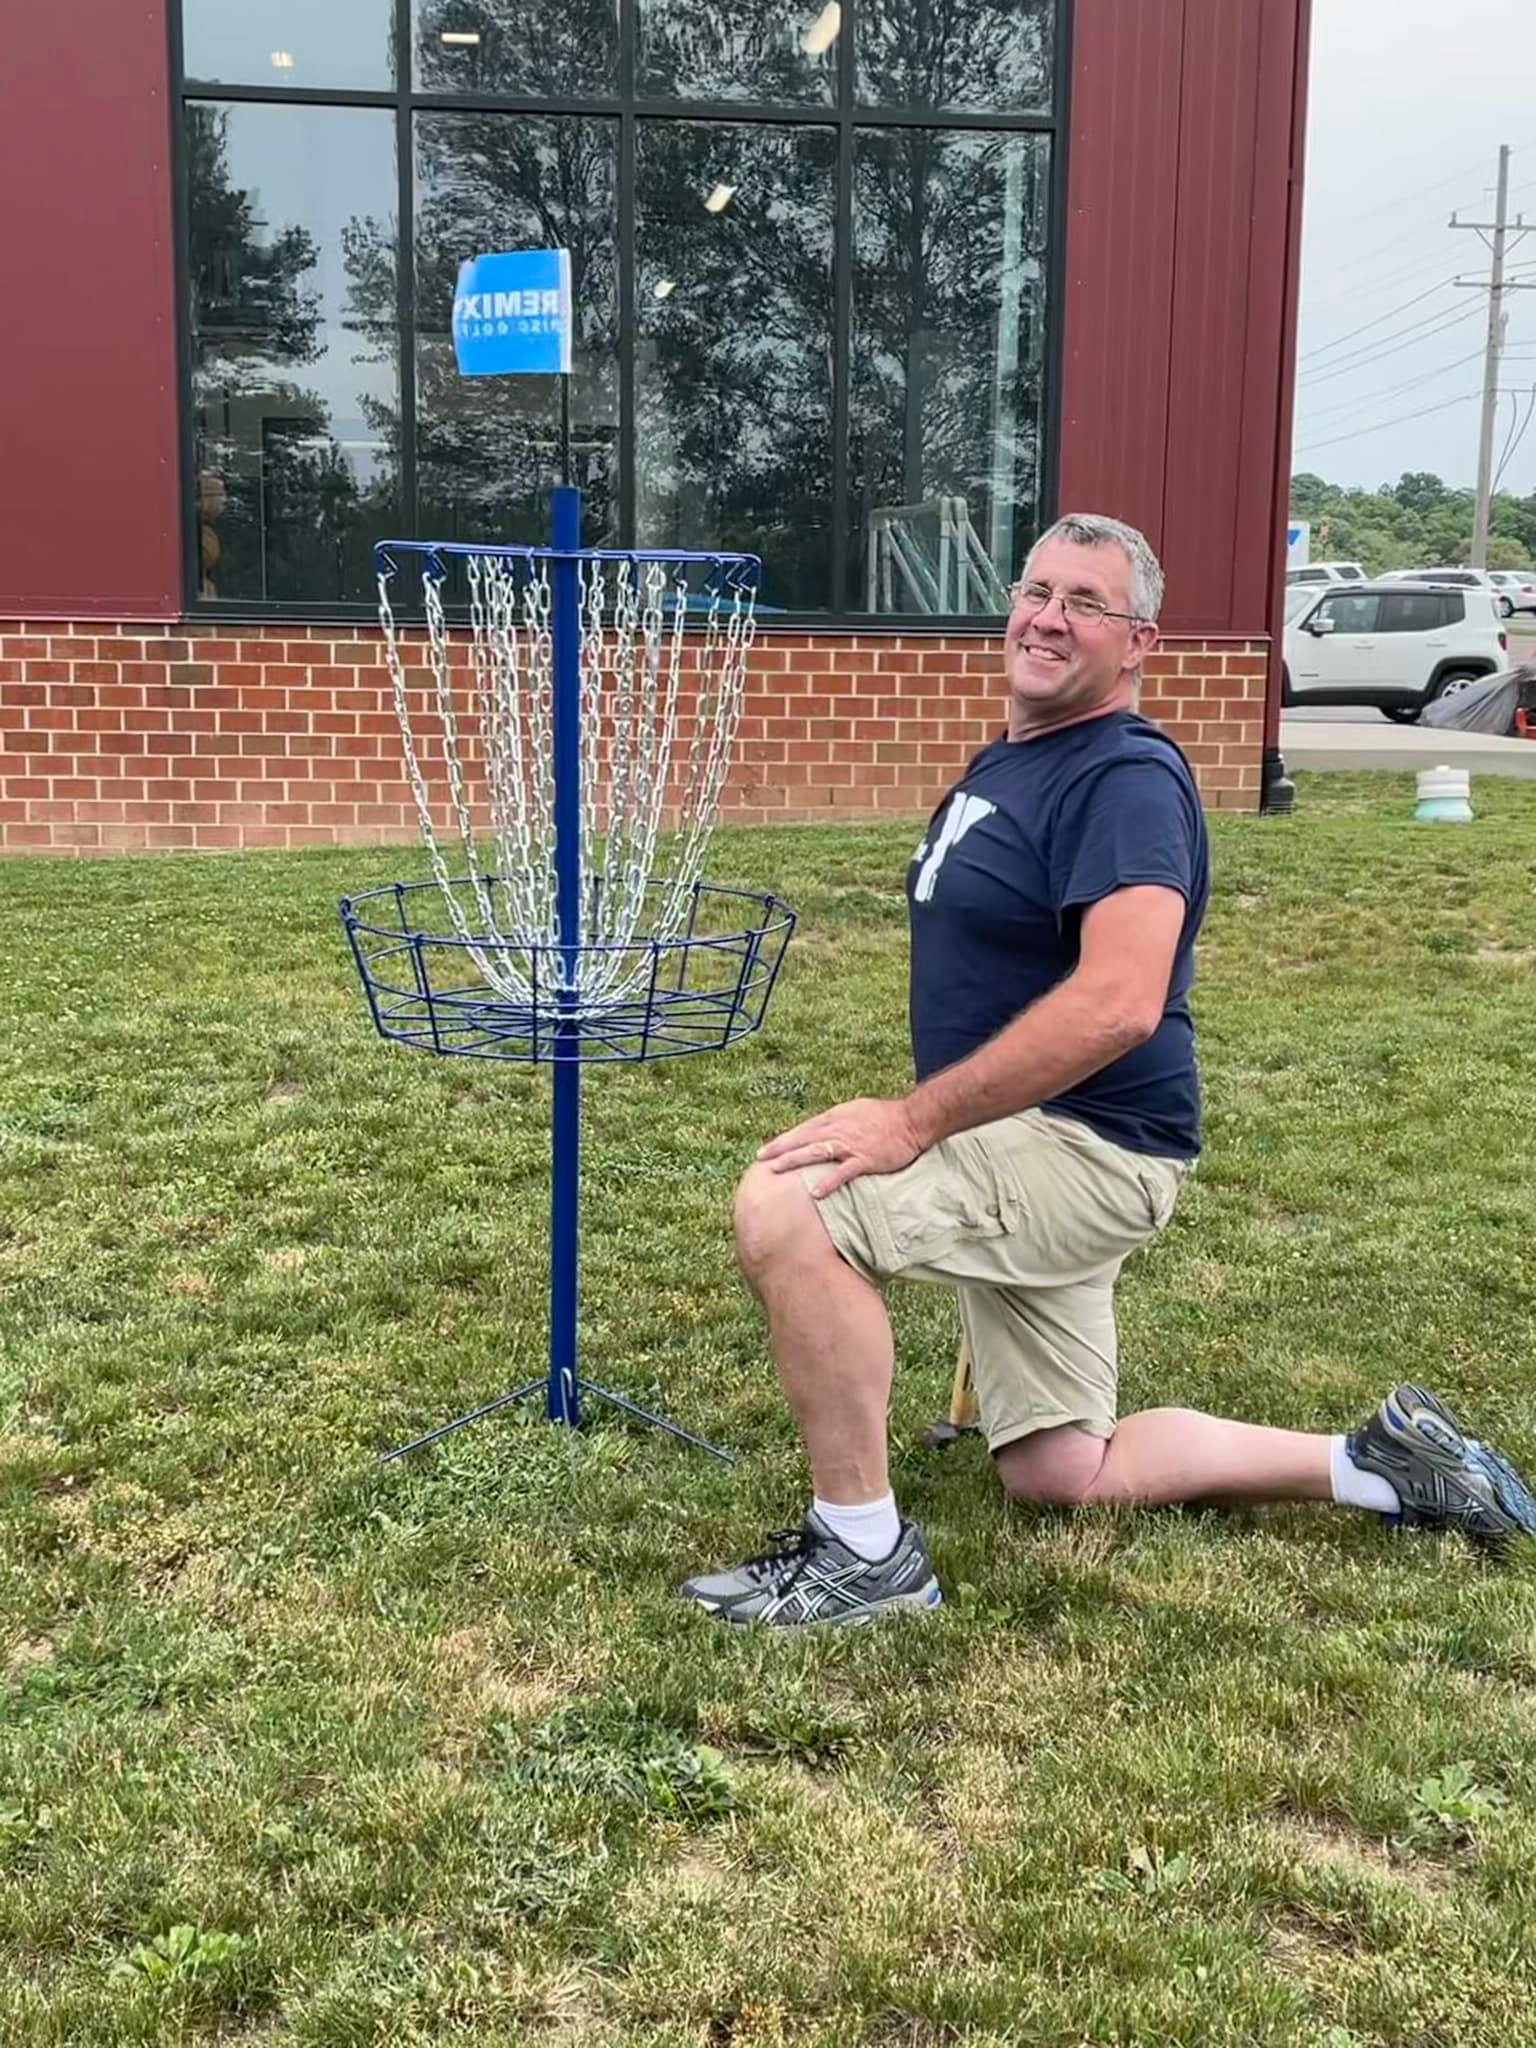 The Clarion County YMCA is now open for disc golf for all members. Photo courtesy of the Clarion County YMCA.